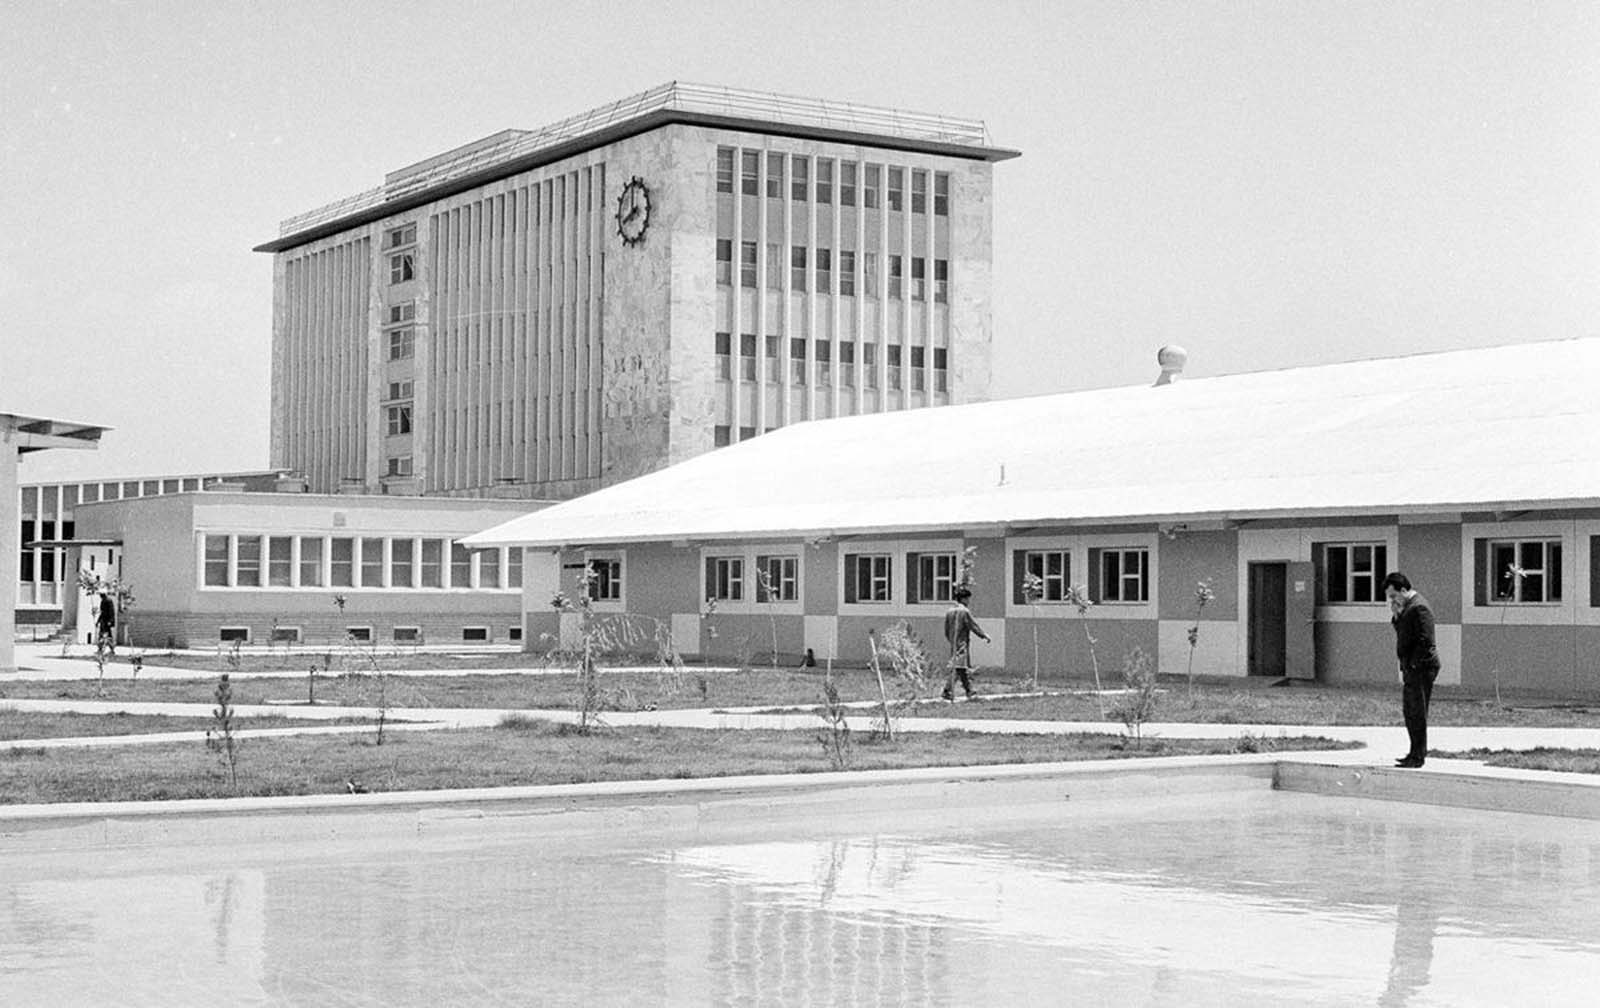 The modern new (completed 1966) government printing plant in Kabul, on June 9, 1966, which houses Kabul Times. Most of its machinery was furnished by West Germany.